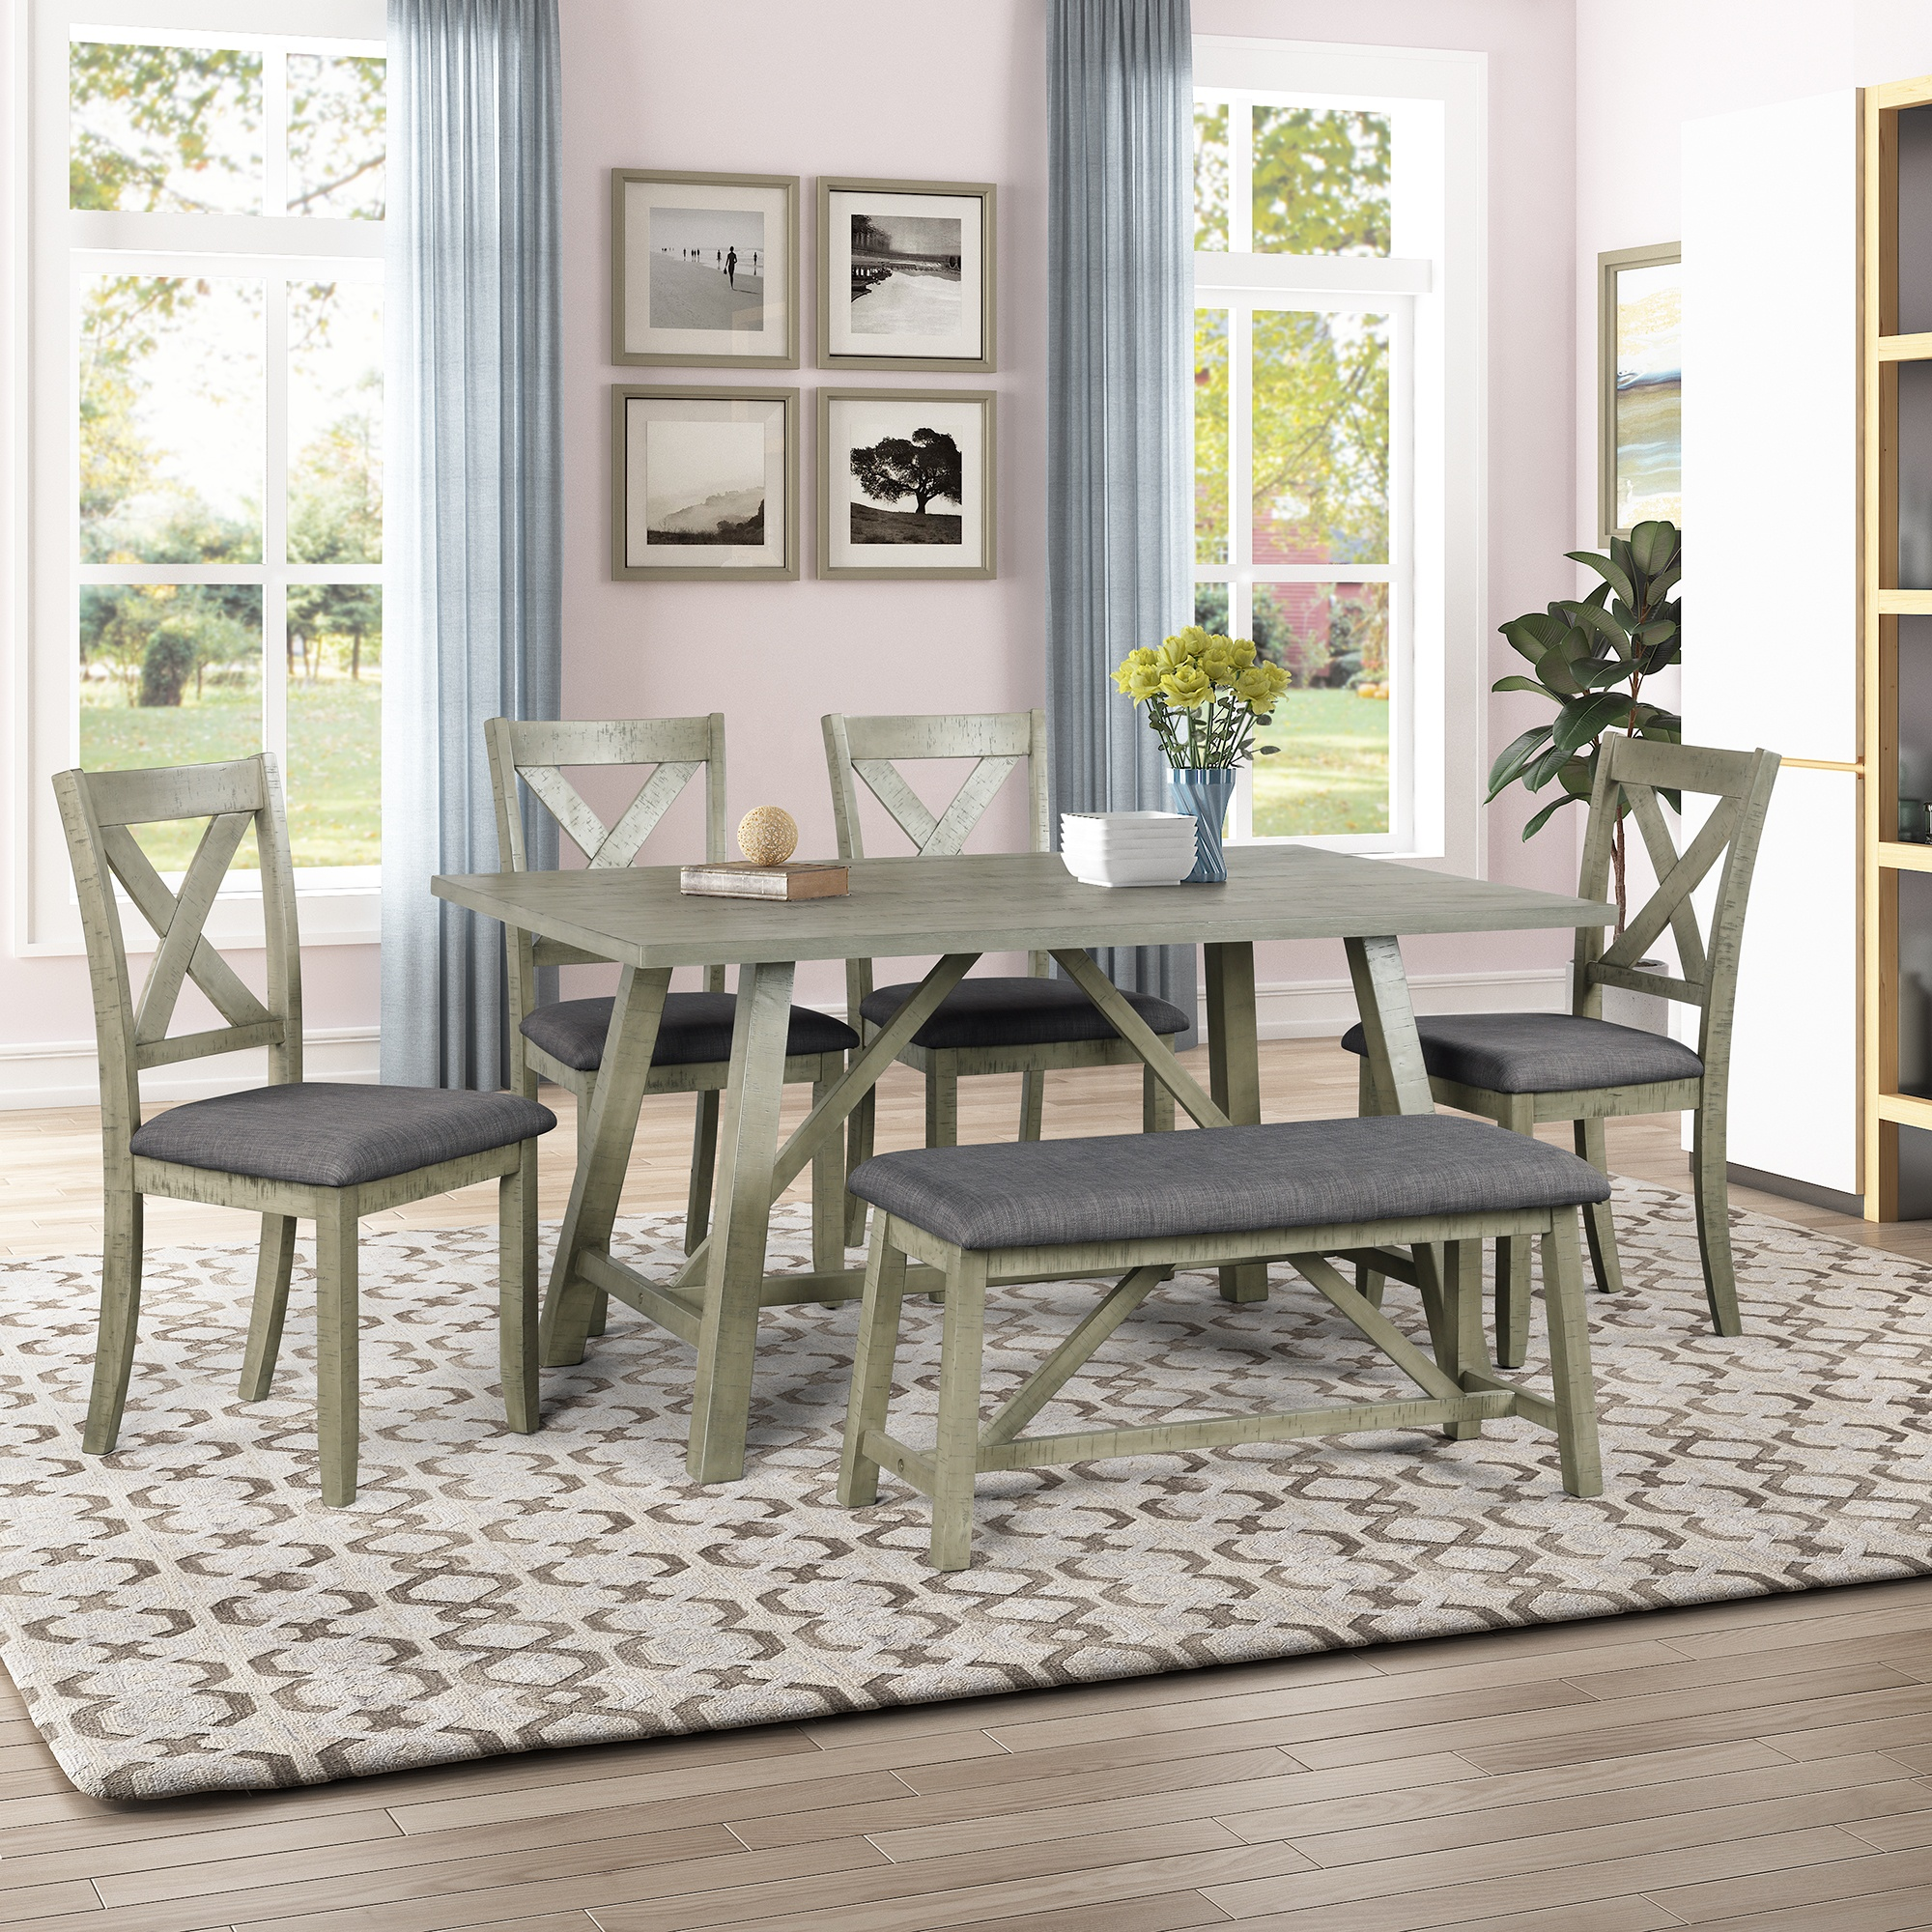 Wood Dining Table And Chair Kitchen Table Set With Table Bench And 4 Chairs Buy Kitchen Table Set Dining Table Dining Table And Chair Product On Alibaba Com